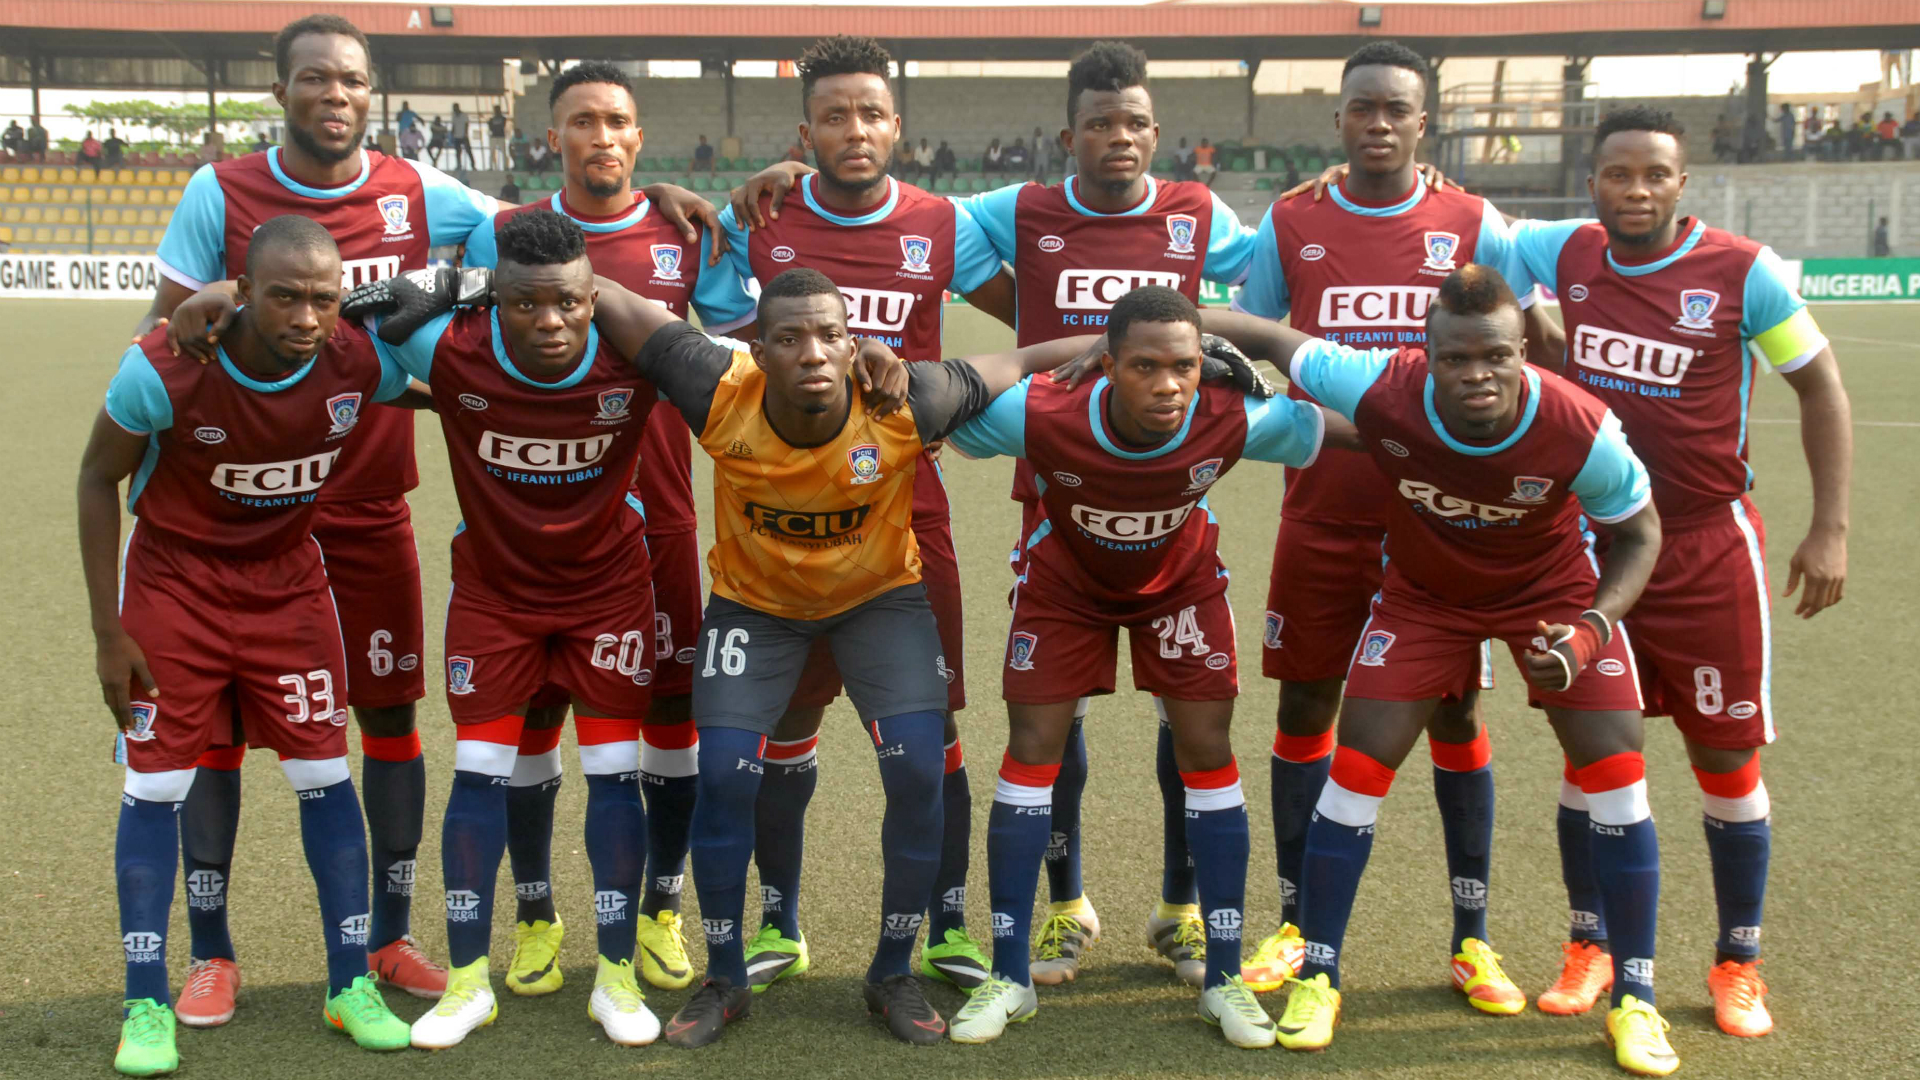 FC Ifeanyi Ubah players and coaches 'critically injured' after armed robbery attack